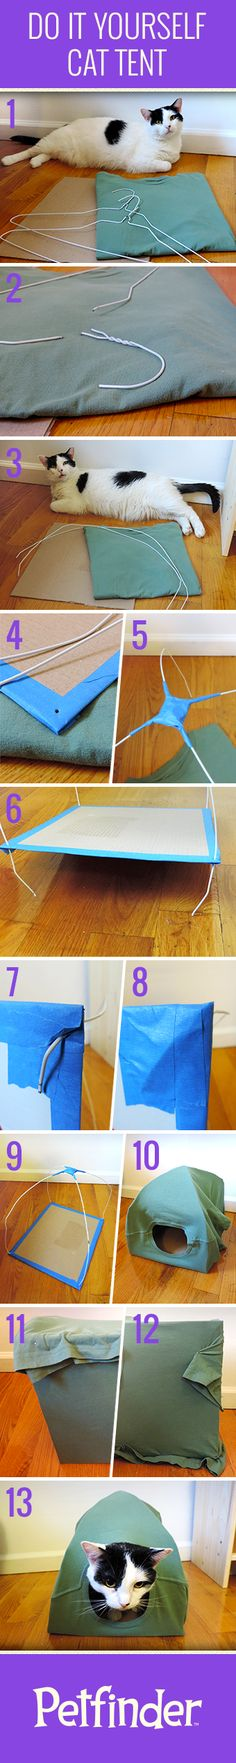 Cats Toys Ideas - Make your cat a happy camper by putting together this easy DIY project. It just takes a couple of coat hangers, cardboard, tape and an old t-shirt to make this cat tent - perfect for sleep and play! - Ideal toys for small cats Animal Projects, Diy Projects, Diy Cat Tent, Ideal Toys, Small Cat, Cat Crafts, Here Kitty Kitty, Diy Stuffed Animals, Cat Toys